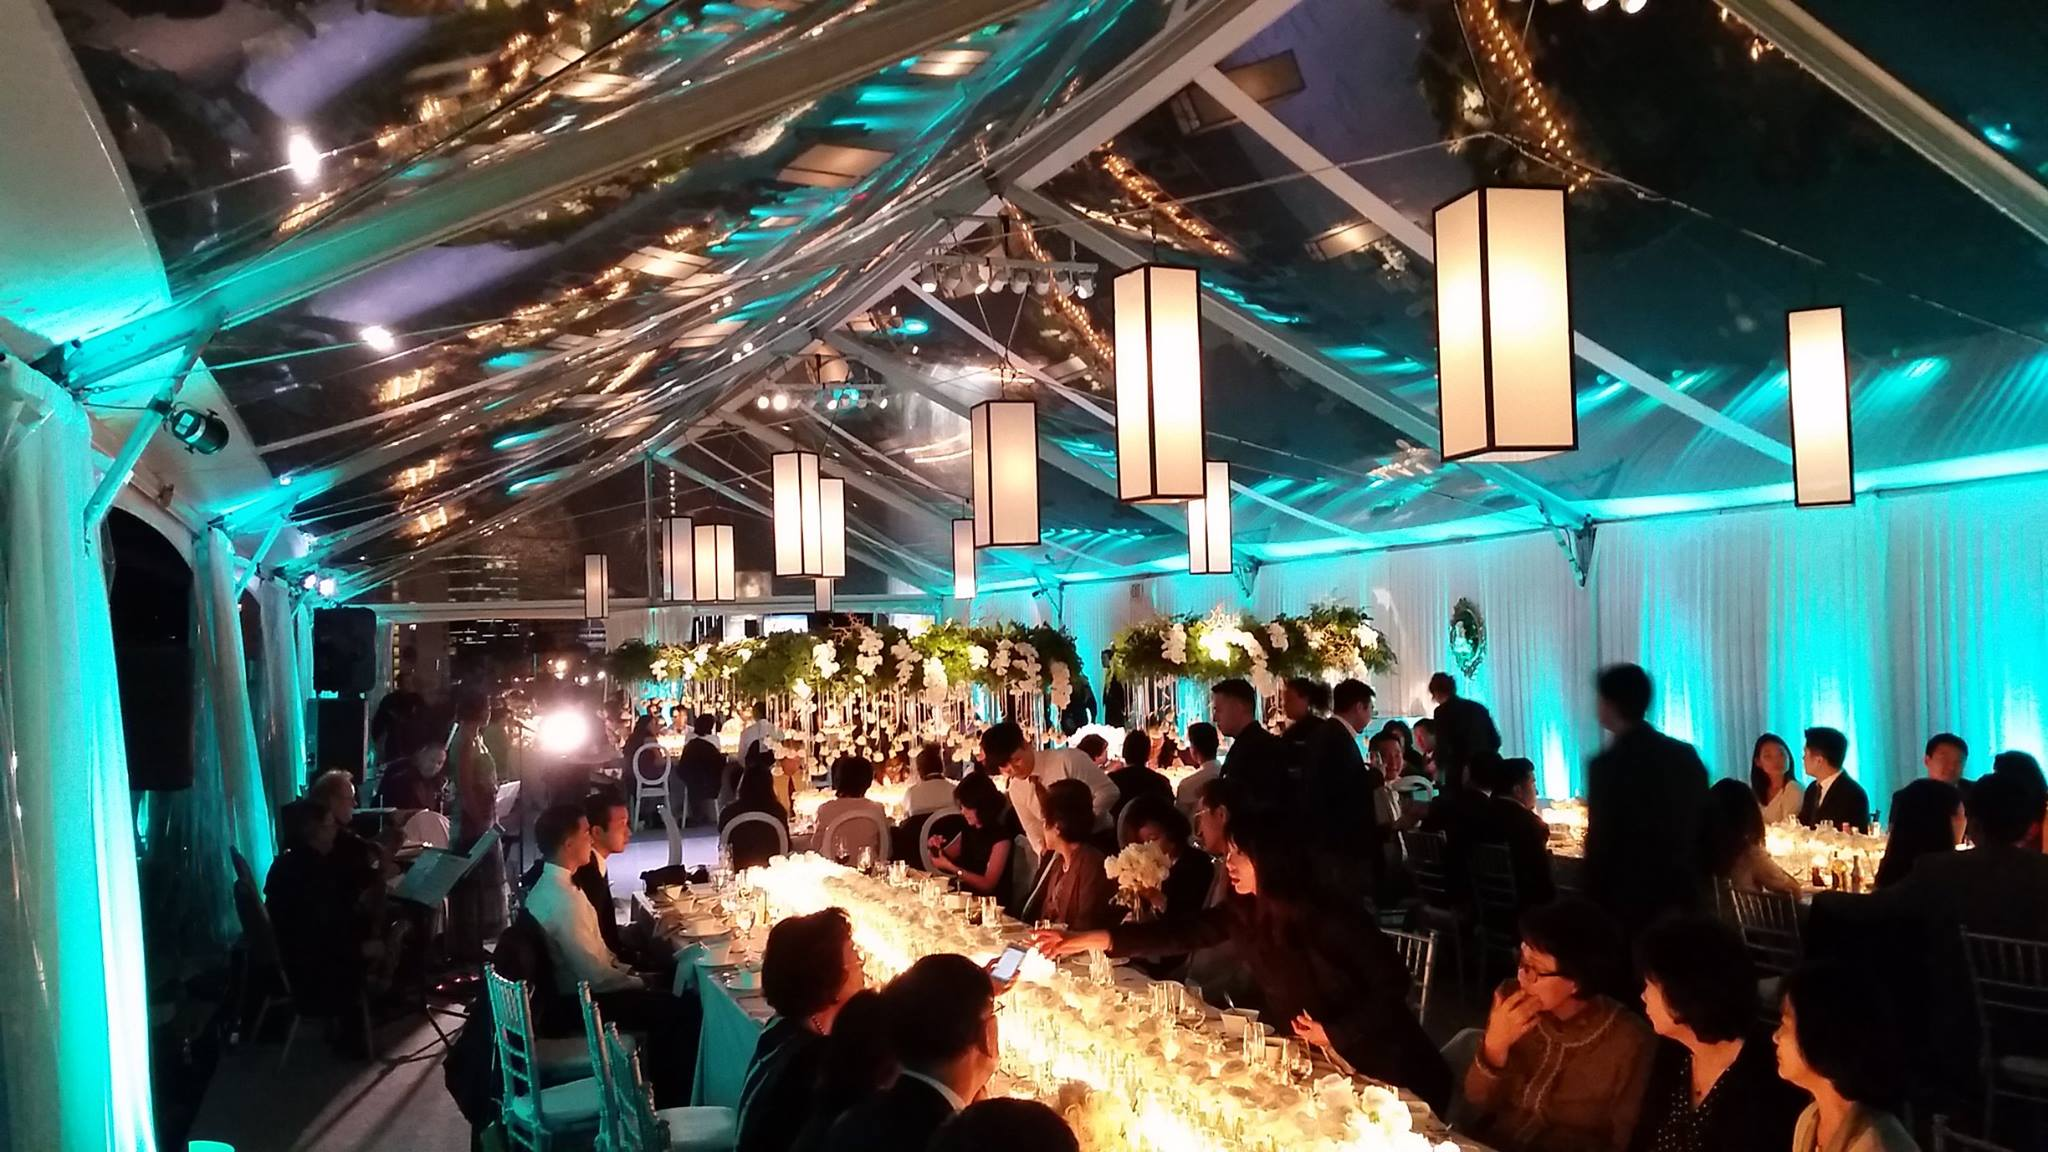 Services Envira Str Miami Multimedia Staging Services Audio Visual Rental Live Event Av Production Video Sound Lighting Presentation Management Specialty Hd Led Lcd Video Projection Mapping Imag Rigging Custom Backdrops